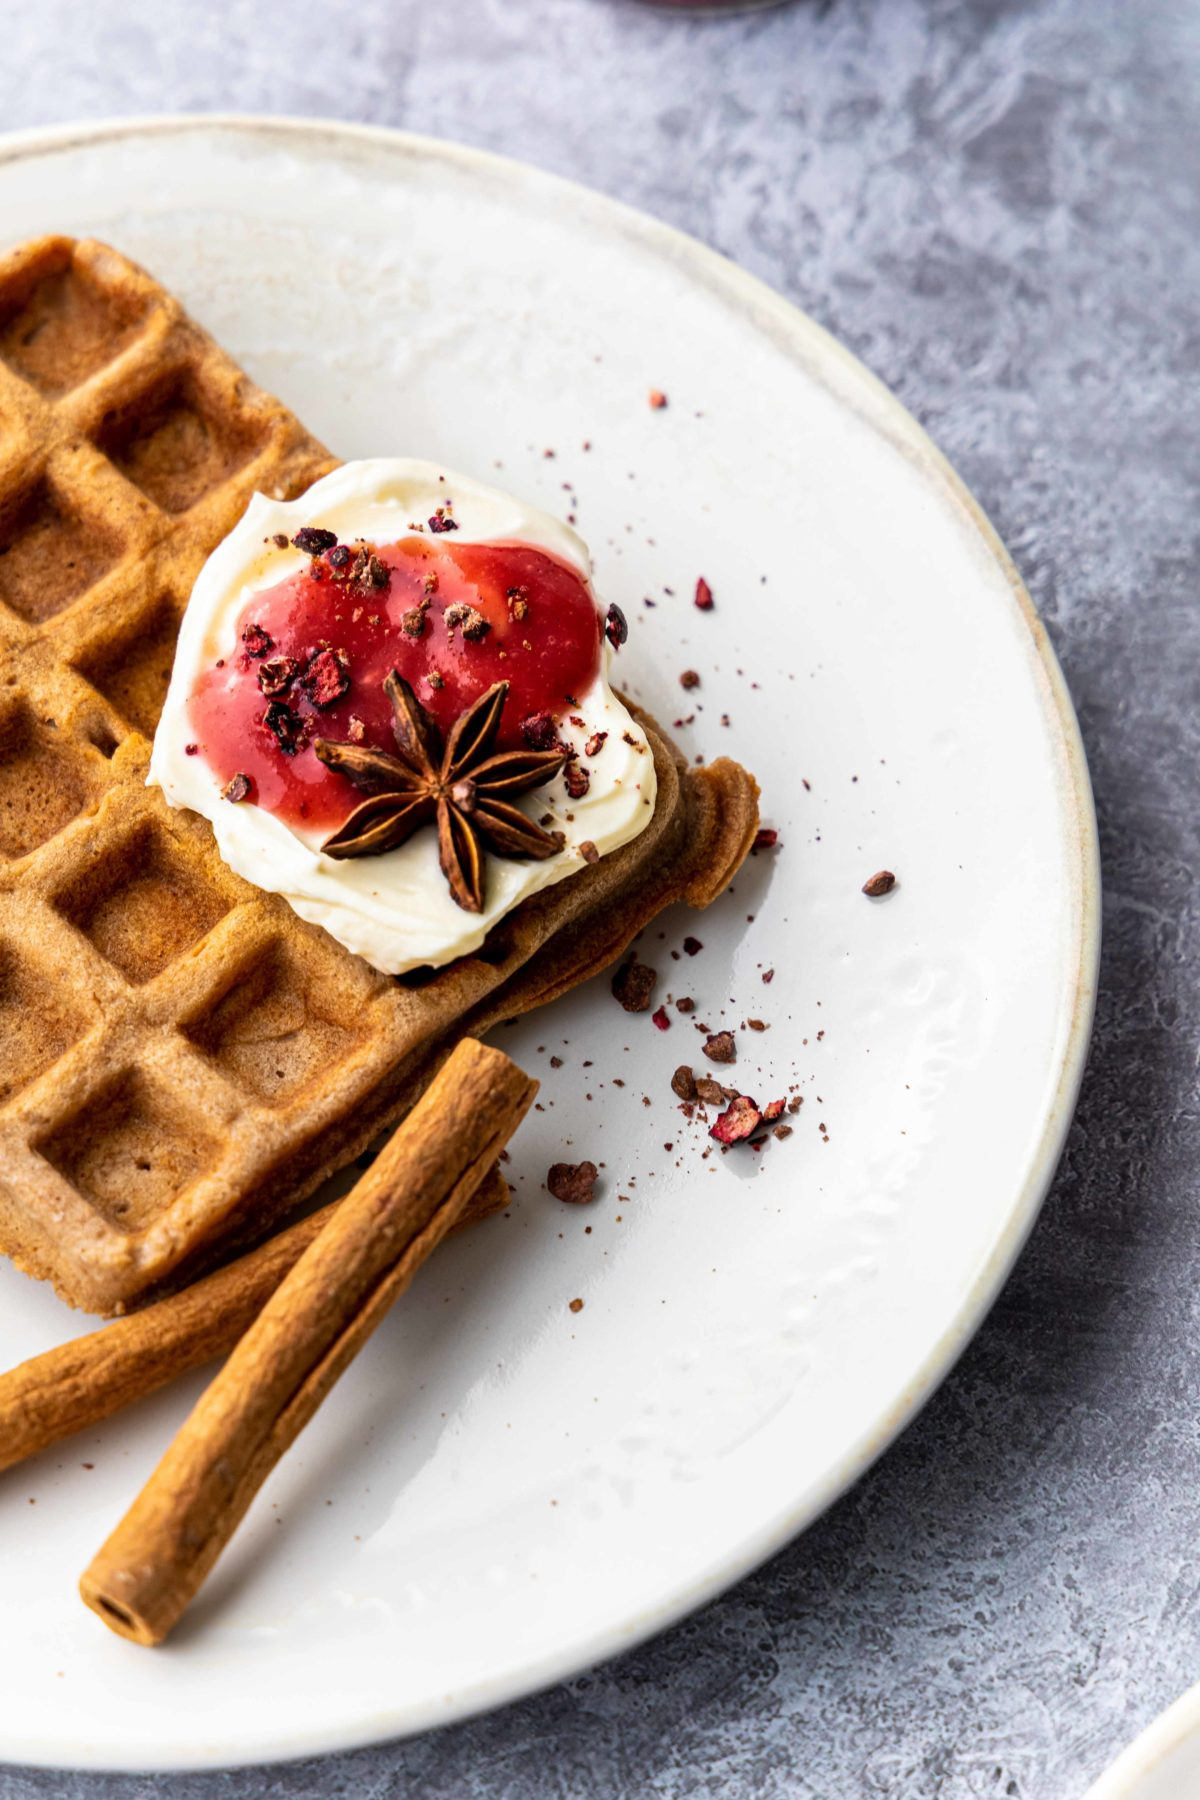 Kakao Waffeln mit Mascarpone und Plaumenmus // Chocolate Waffles with mascarpone and plum jam by https://babyrockmyday.com/kakao-waffeln/